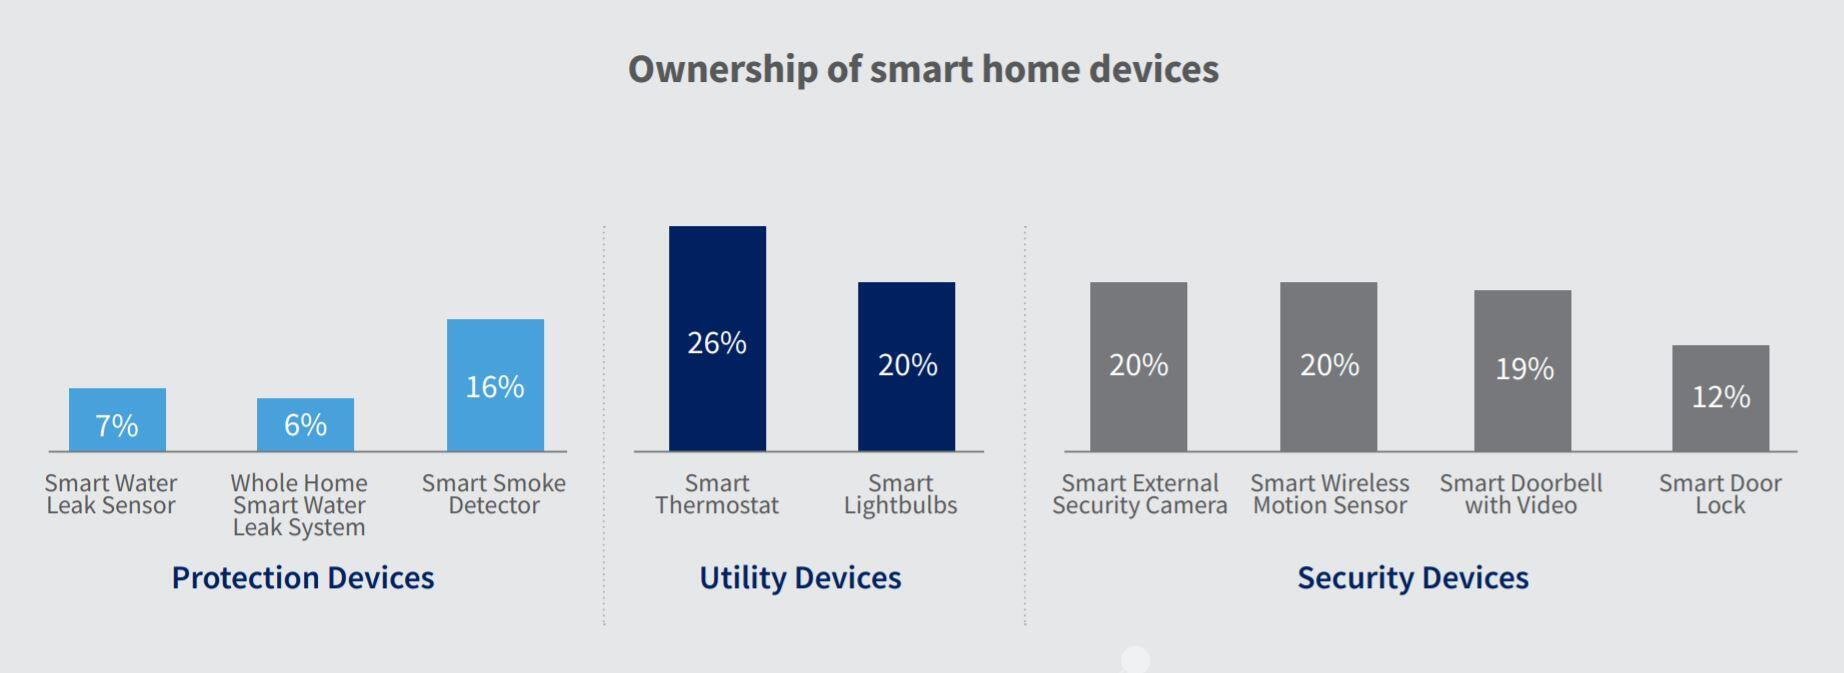 smart-home-device-category-ownership-2019